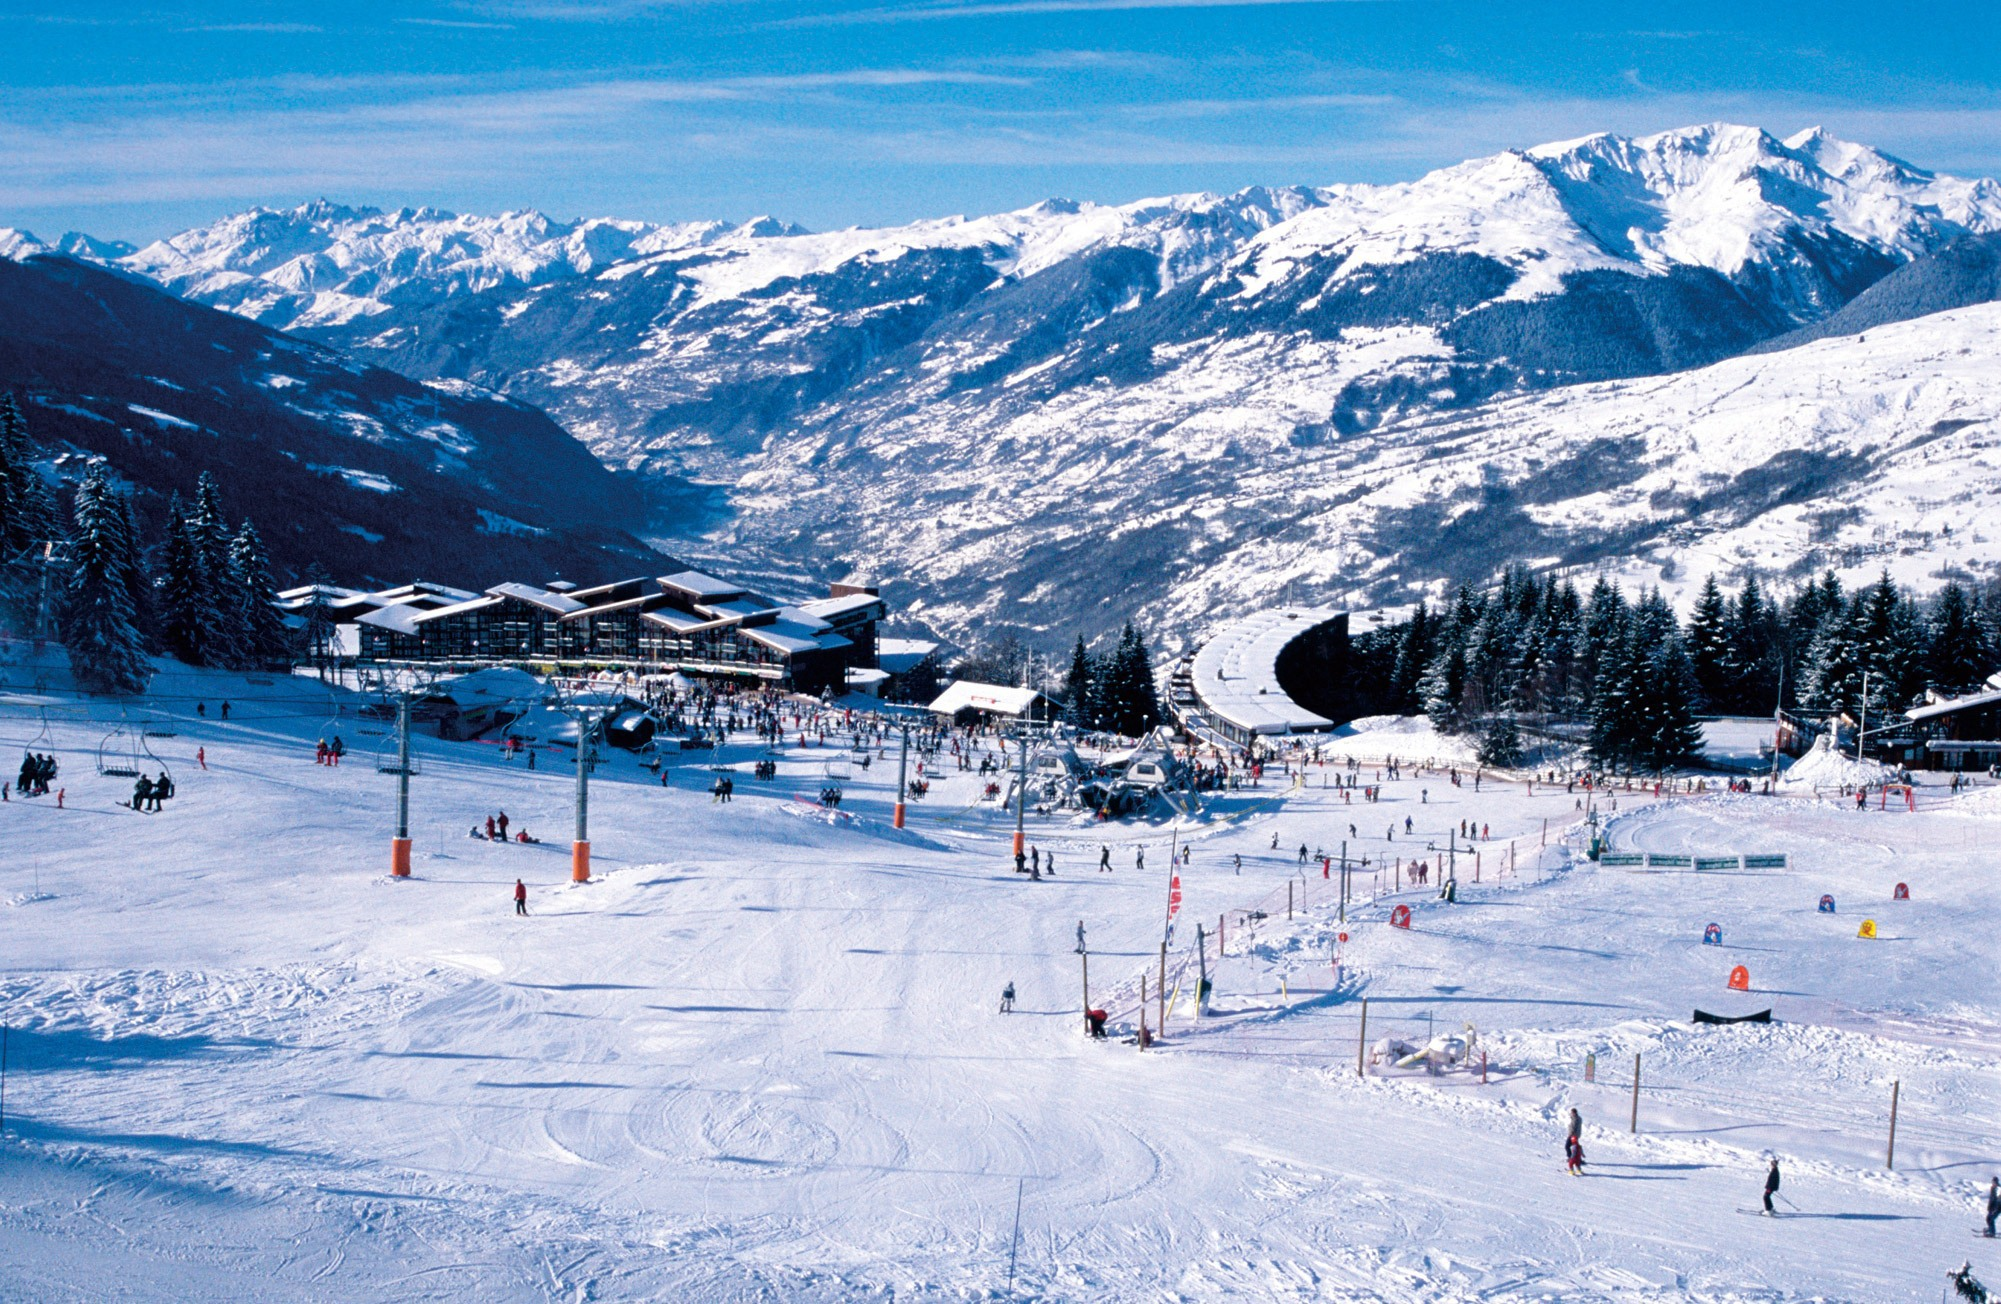 Ski piste in the ski resort of Les Arcs France wallpapers and images 2001x1304